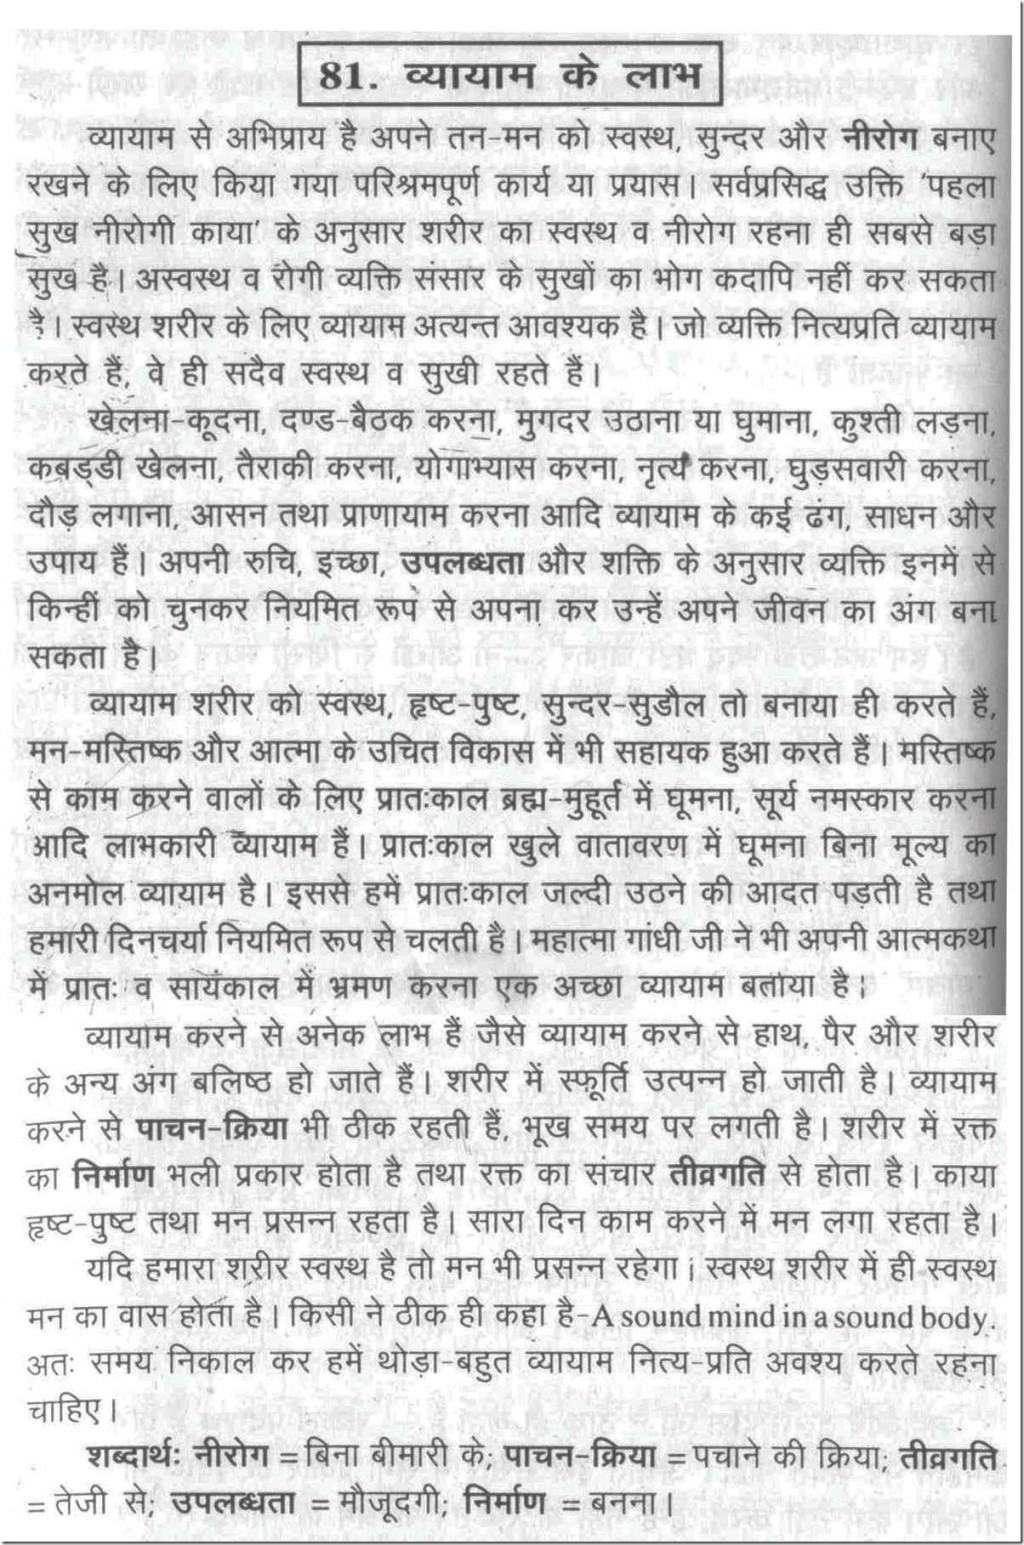 011 2563478896 Essay On Health And Fitness Through Food Good Habits In Hindi Exceptional Habit Eating Bad Large